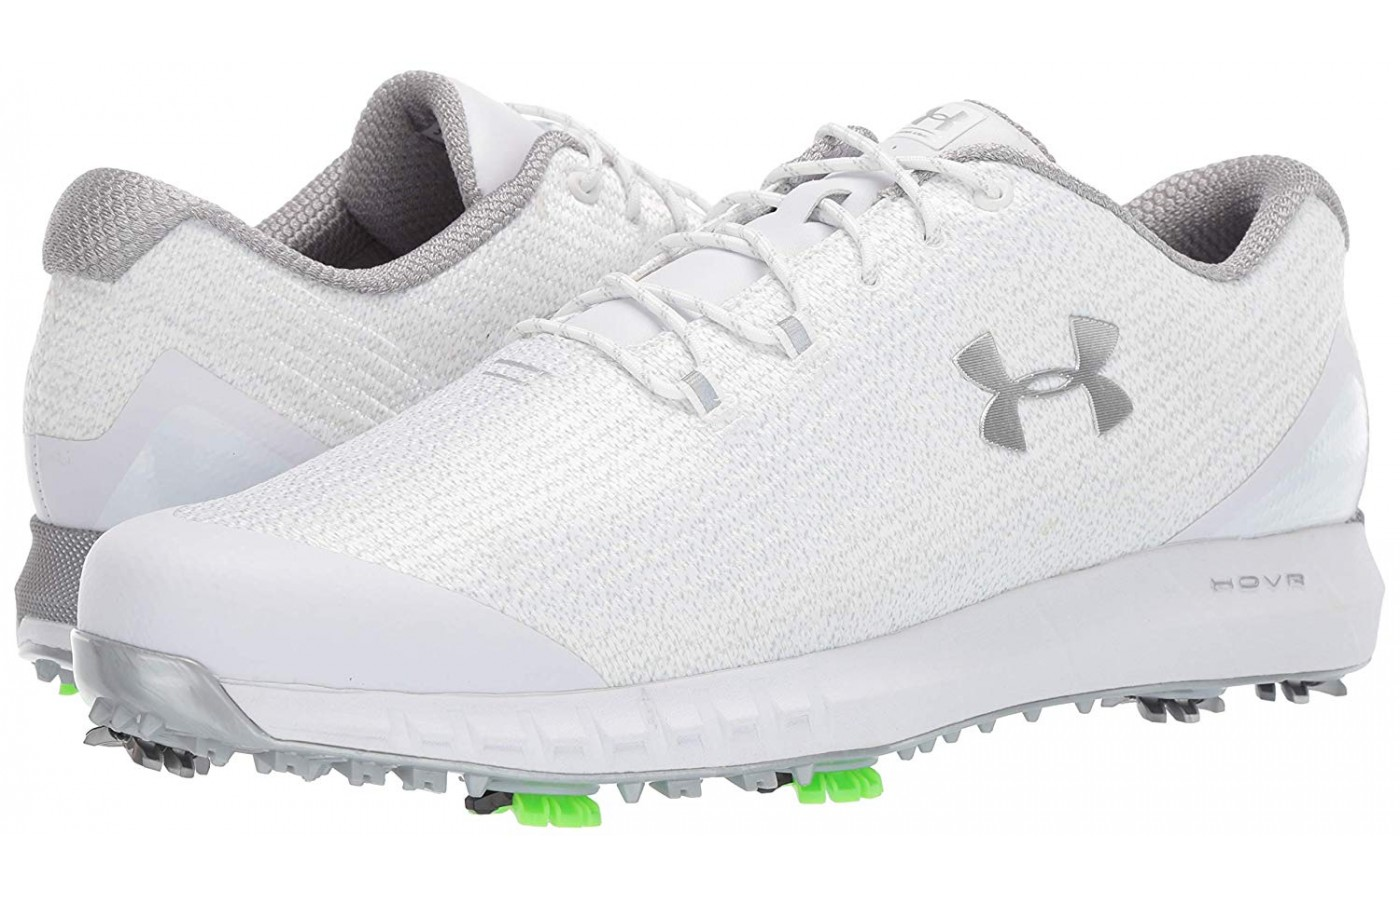 best loved 21e7f 8406b Under Armour HOVR Drive Woven Reviewed in 2019 | WalkJogRun